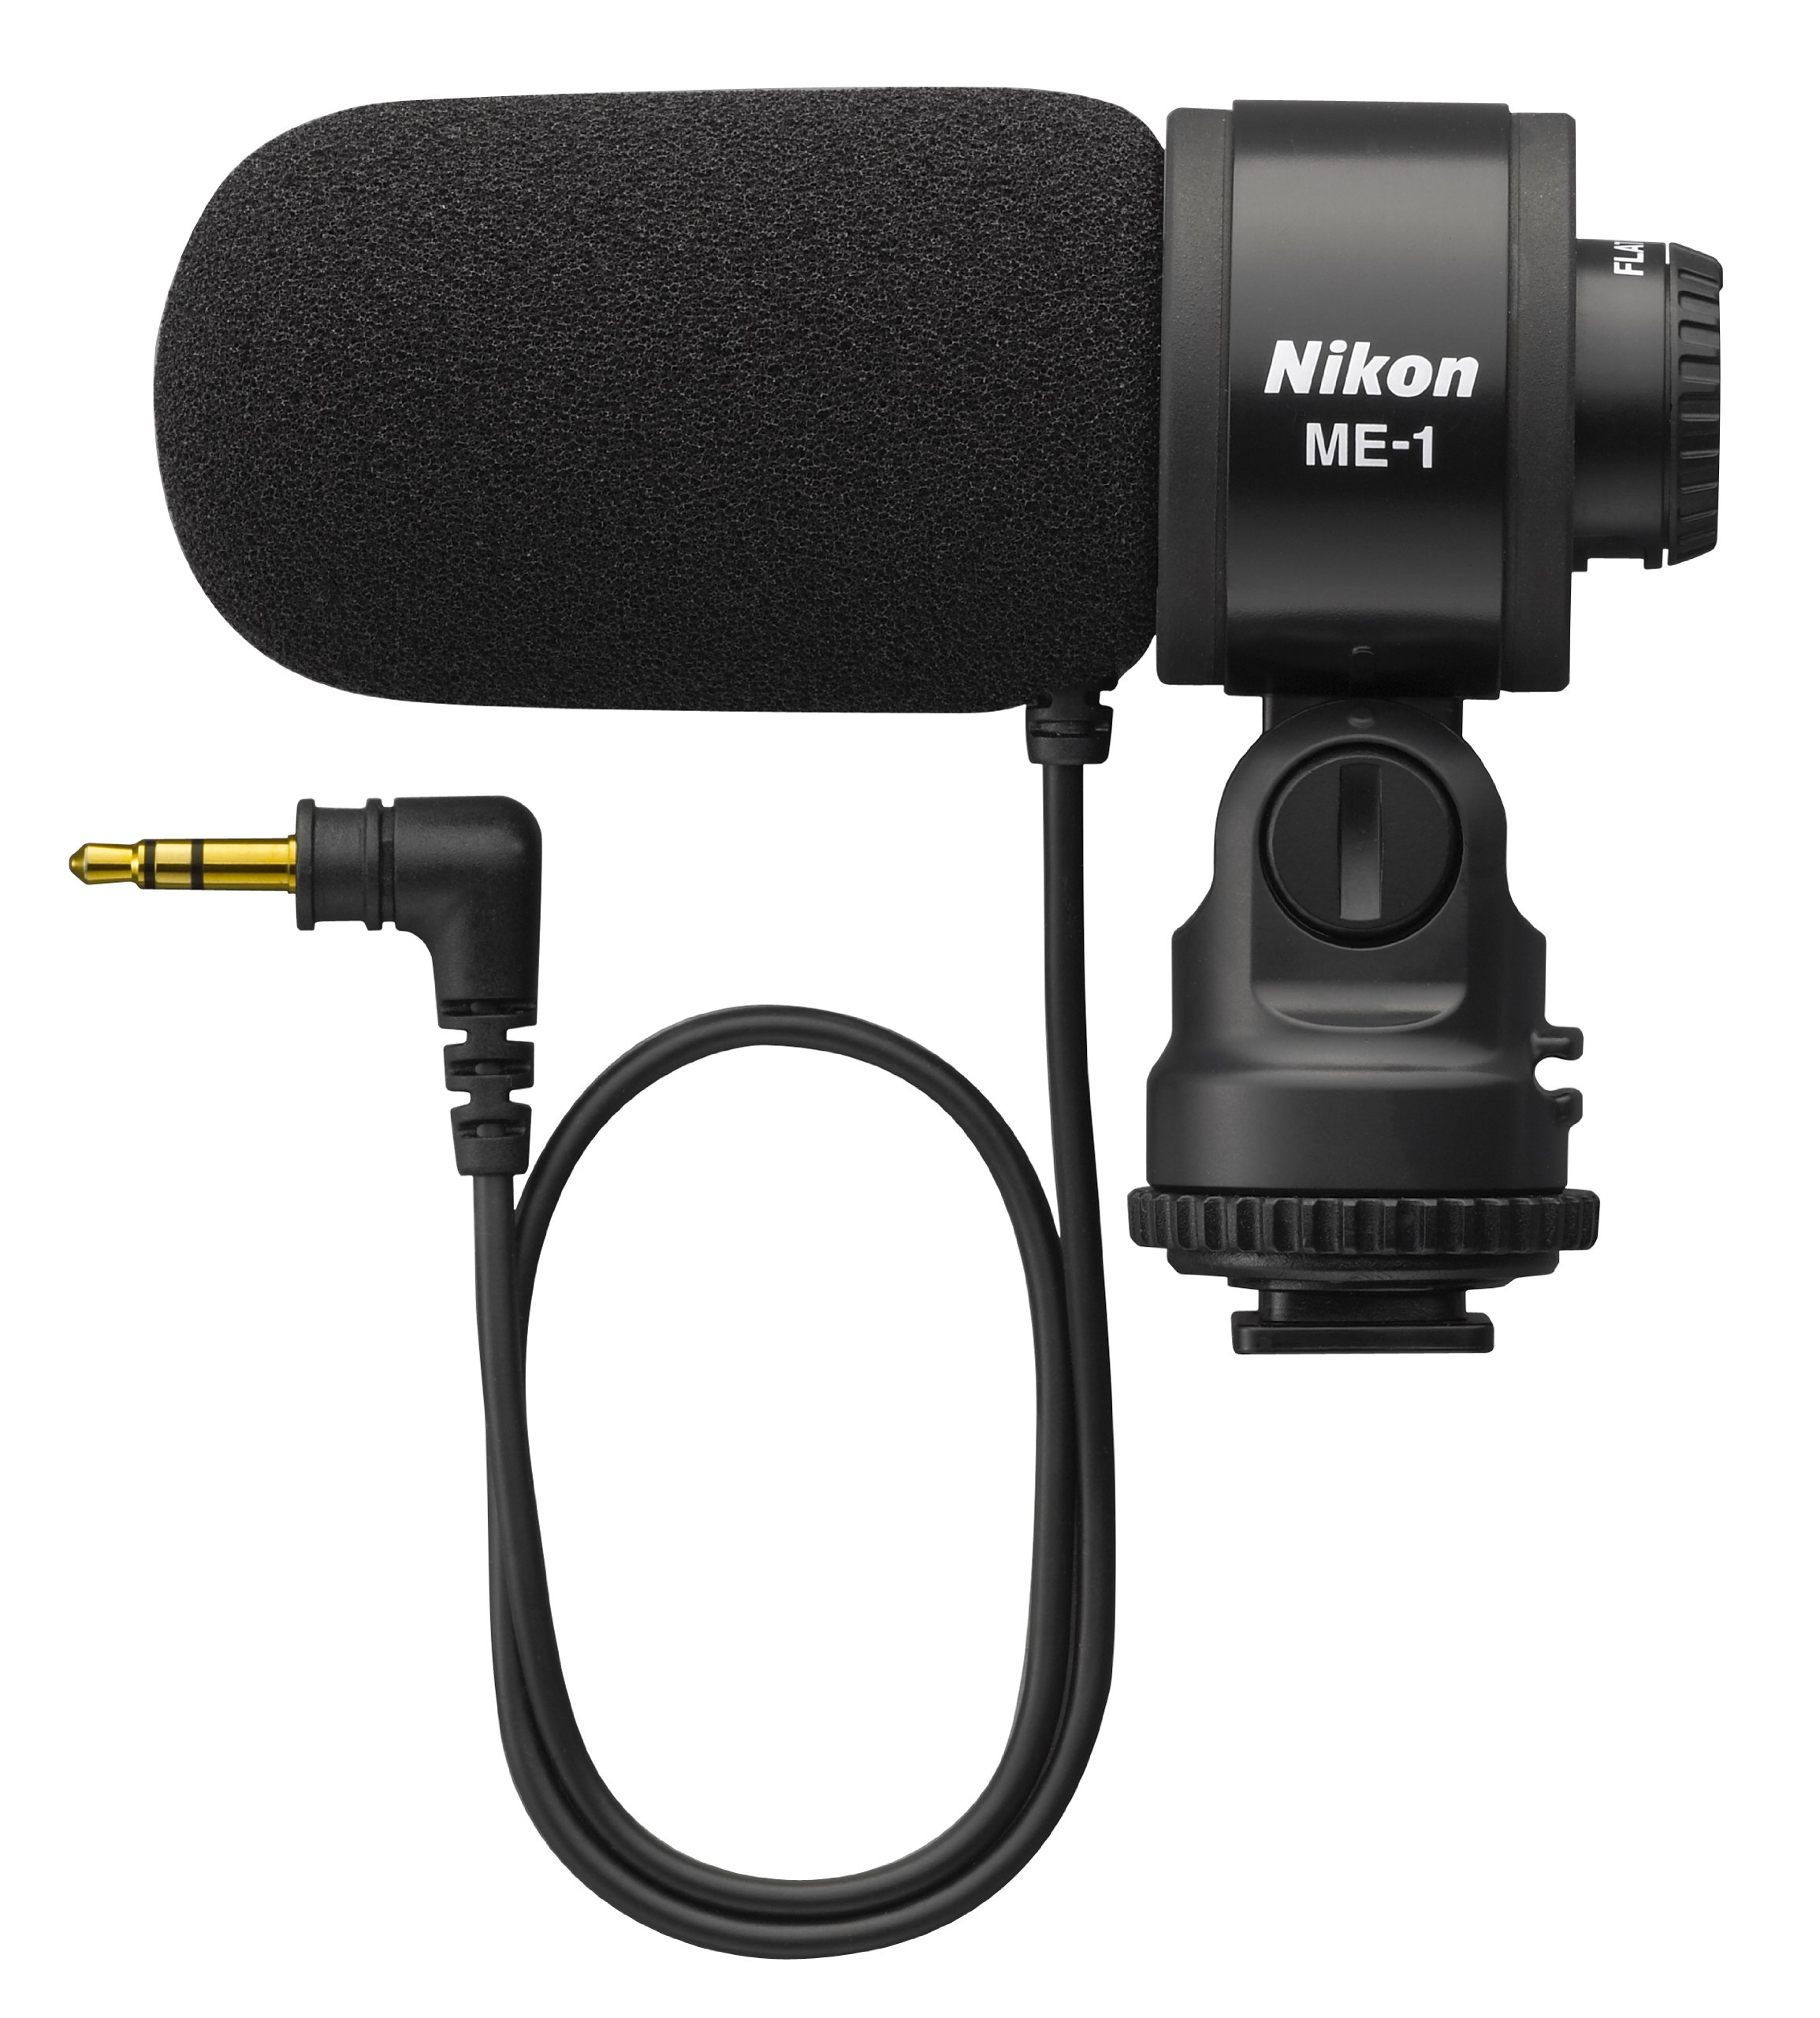 Nikon 27045 ME-1 Stereo Microphone Supplied with Wind Screen and Soft Case by Nikon